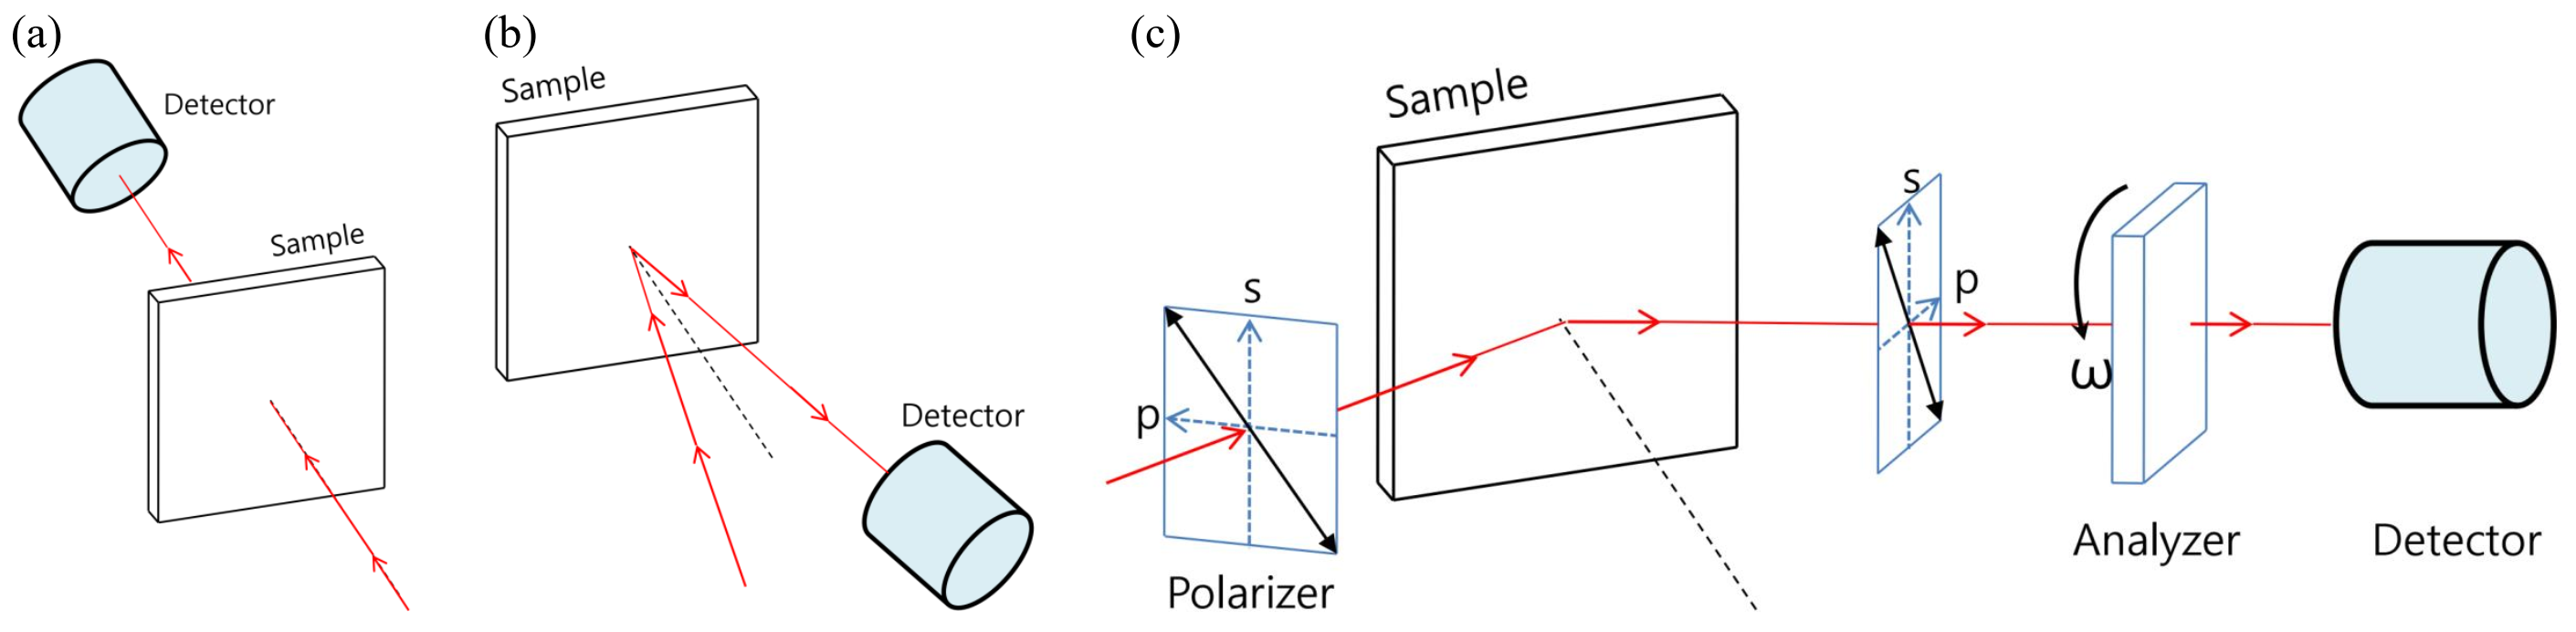 Fig. 5. (a) Transmittance measurement, (b) Reflectance measurement, and (c) Rotating analyzer ellipsometry.